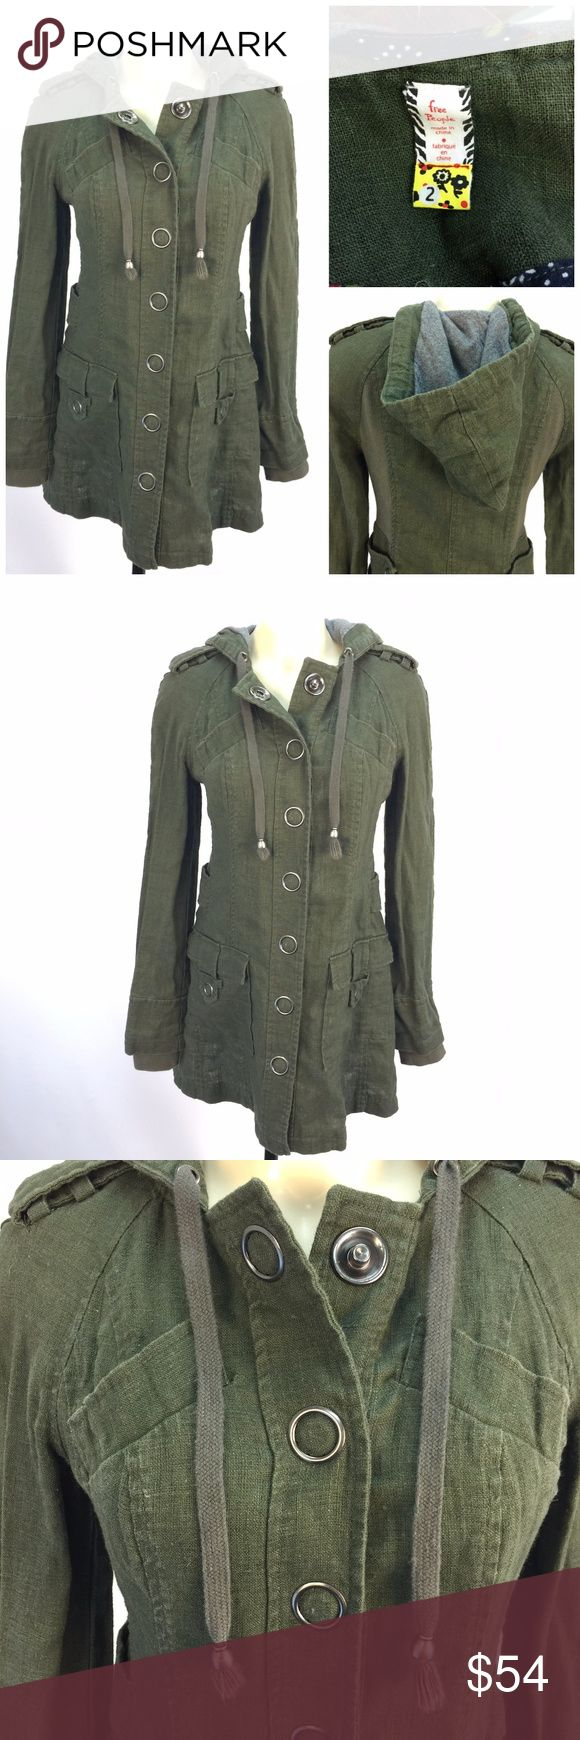 """Free People Coat Jacket Sz 2 Olive Green *  Military olive green snap front jacket/coat by Free People; size 2  * Whimsical oversized snap front; fitted shape w/back stretch panels; hood with drawstring & lining; front pockets; snap epaulets on shoulder; knit cuffs; unlined  * Please see below for measurements; all measurements taken with garment lying flat.  Please see all photos for complete condition assessment.  Shoulder to Shoulder: 15"""" Armpit to Armpit (Bust): 18"""" Waist: 16"""" Overall…"""